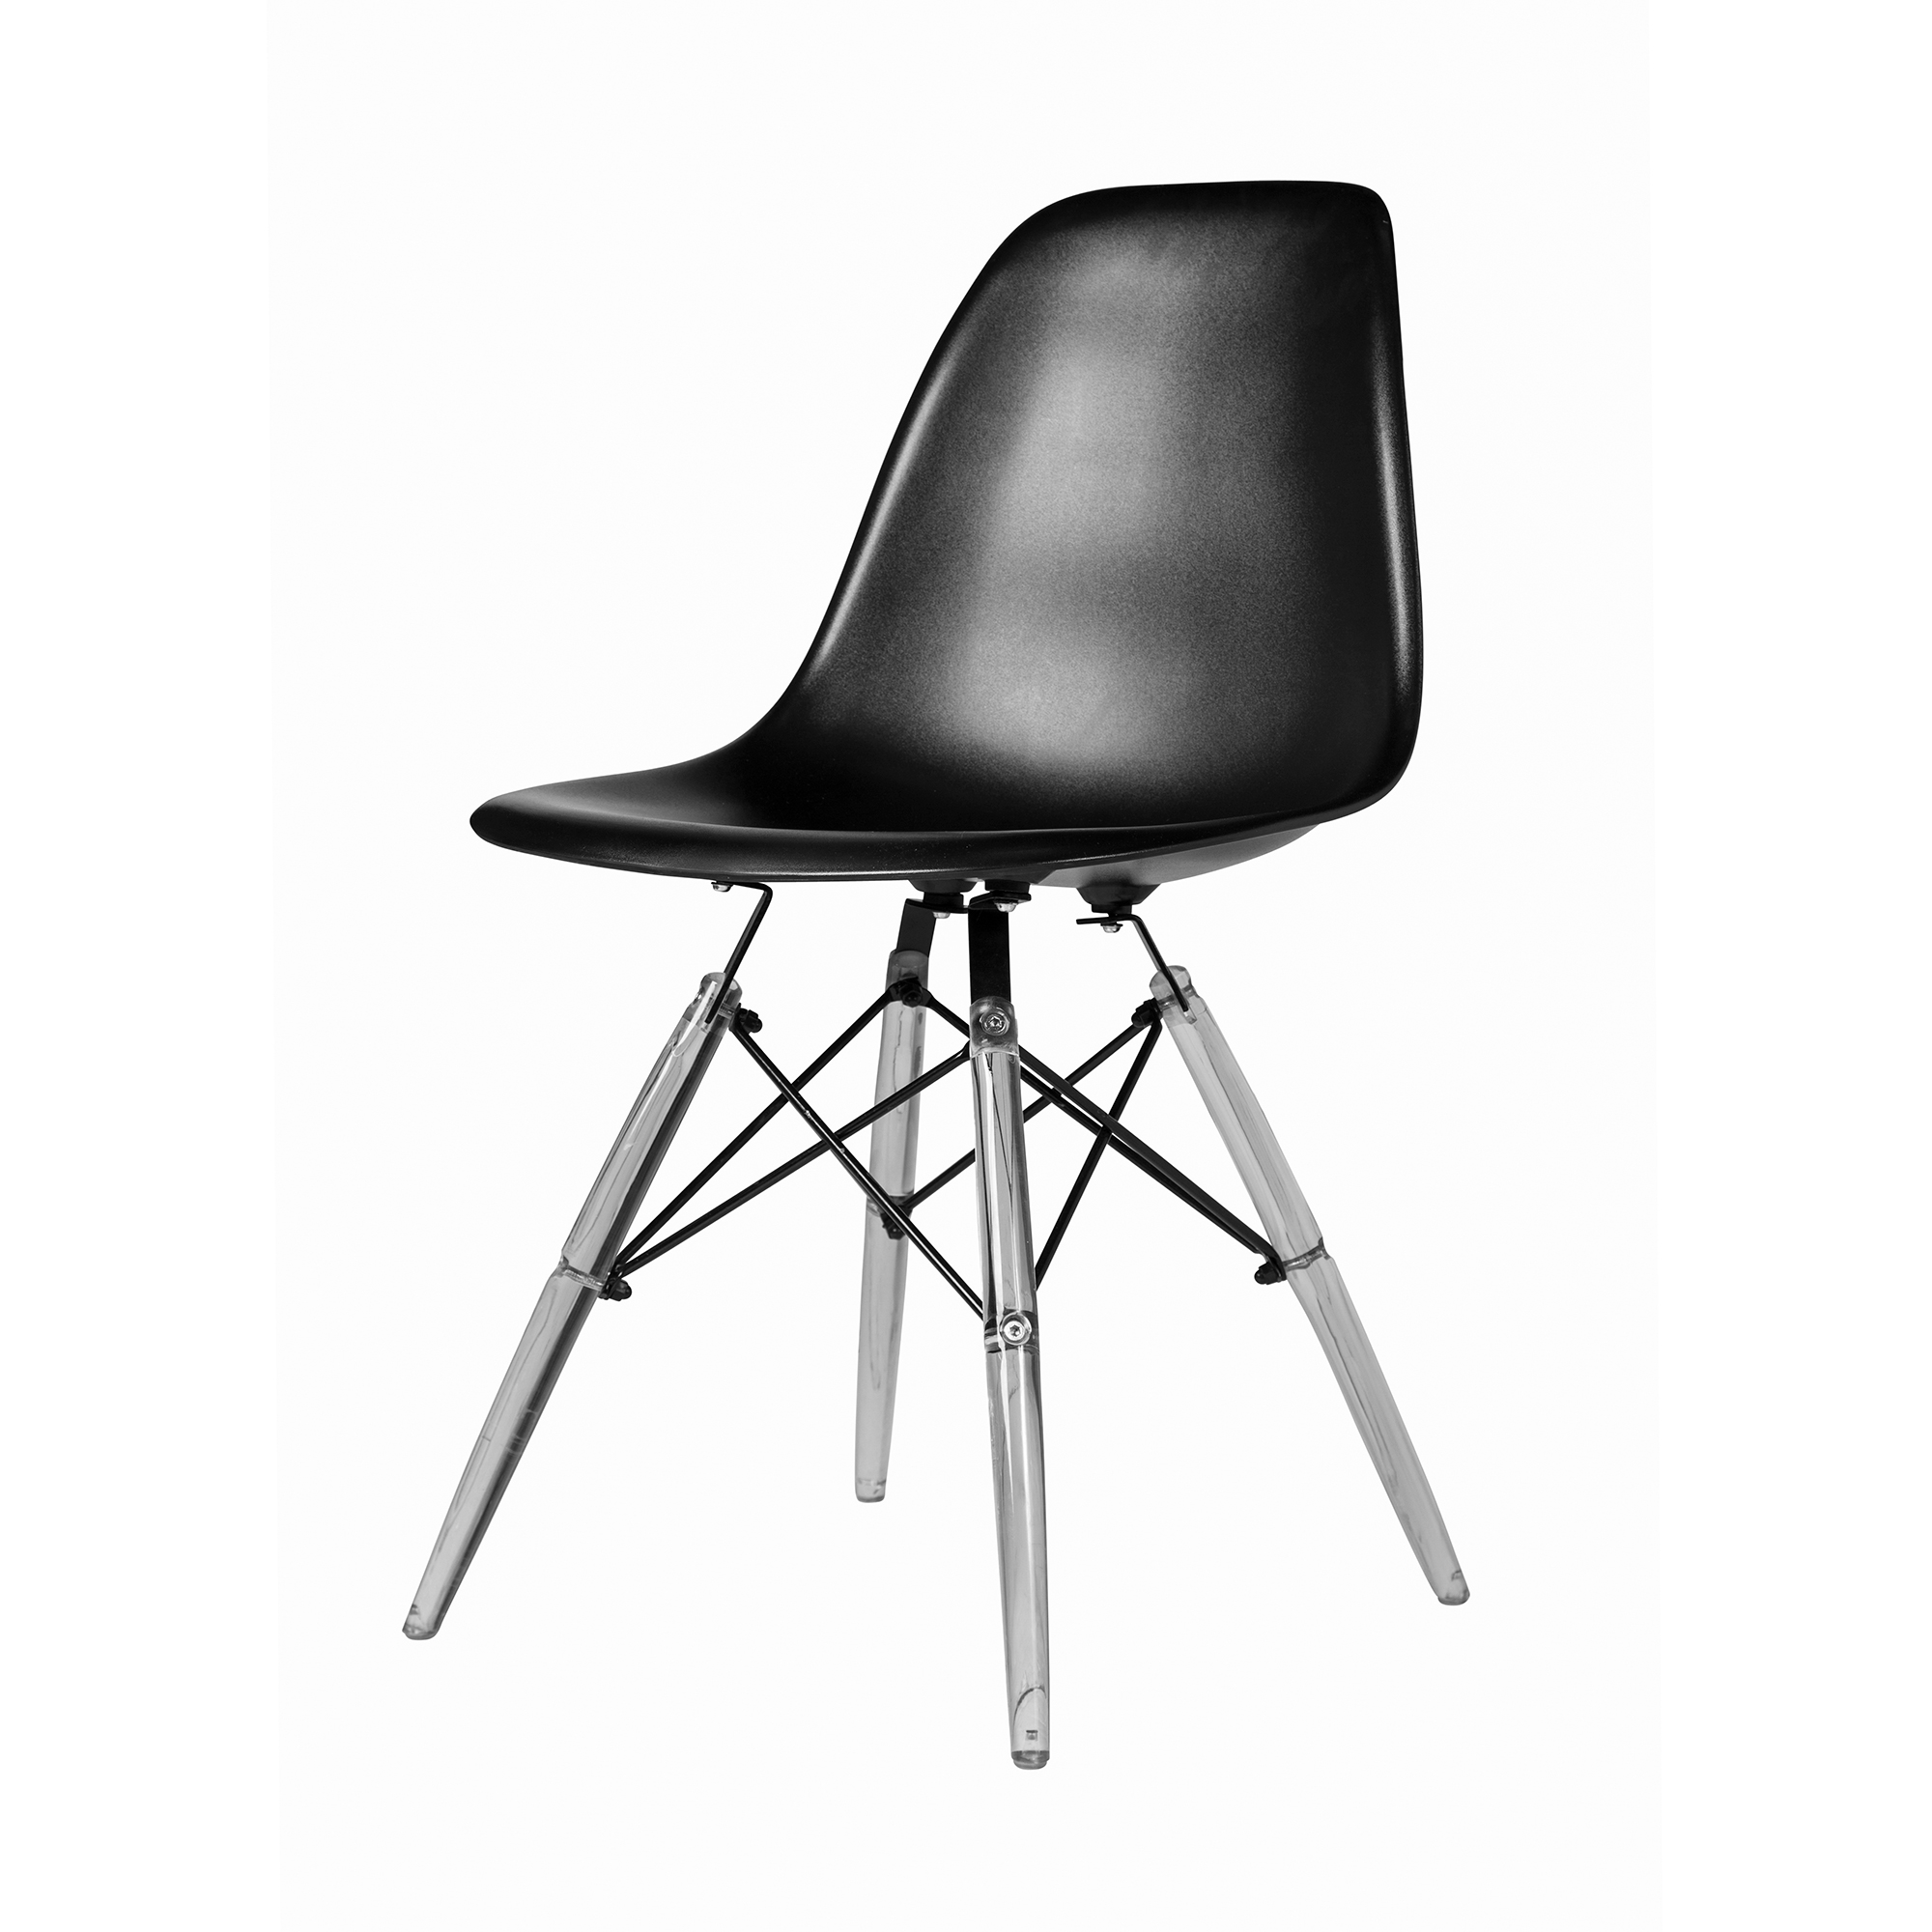 Eames Dsw Molded Midcentury Modern Style Side Chair Black Seat And Clear Legs